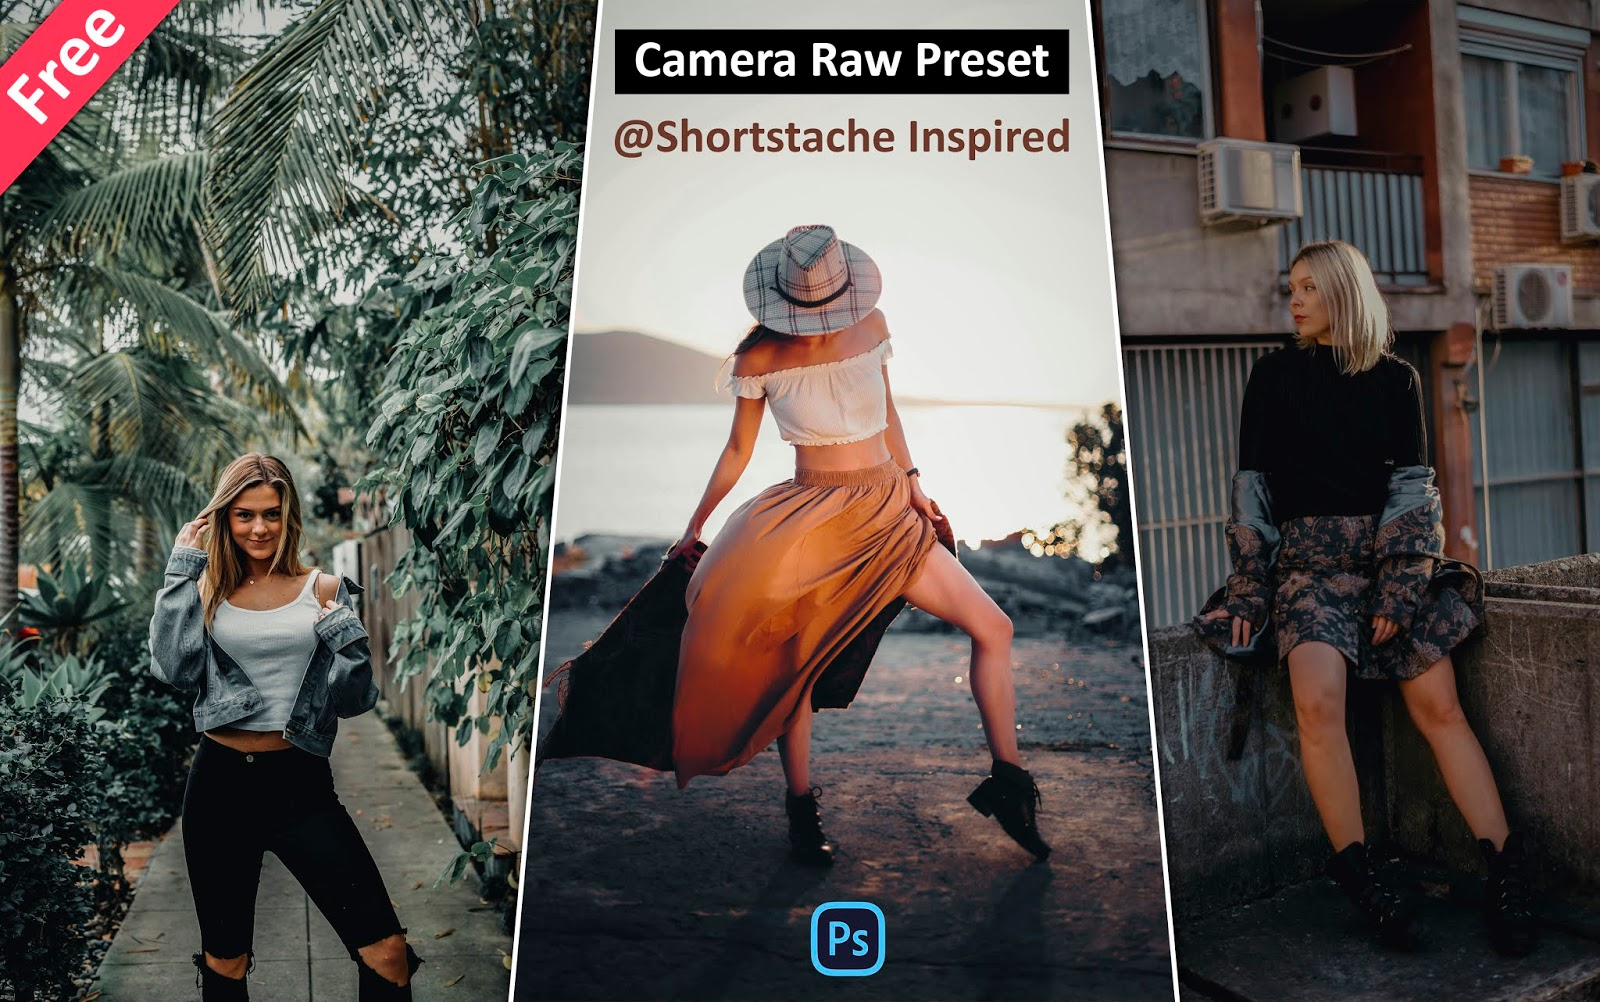 Download Shortstache Inspired Camera Raw Presets for Free | How to Edit Photos Like @shortstache in Photoshop